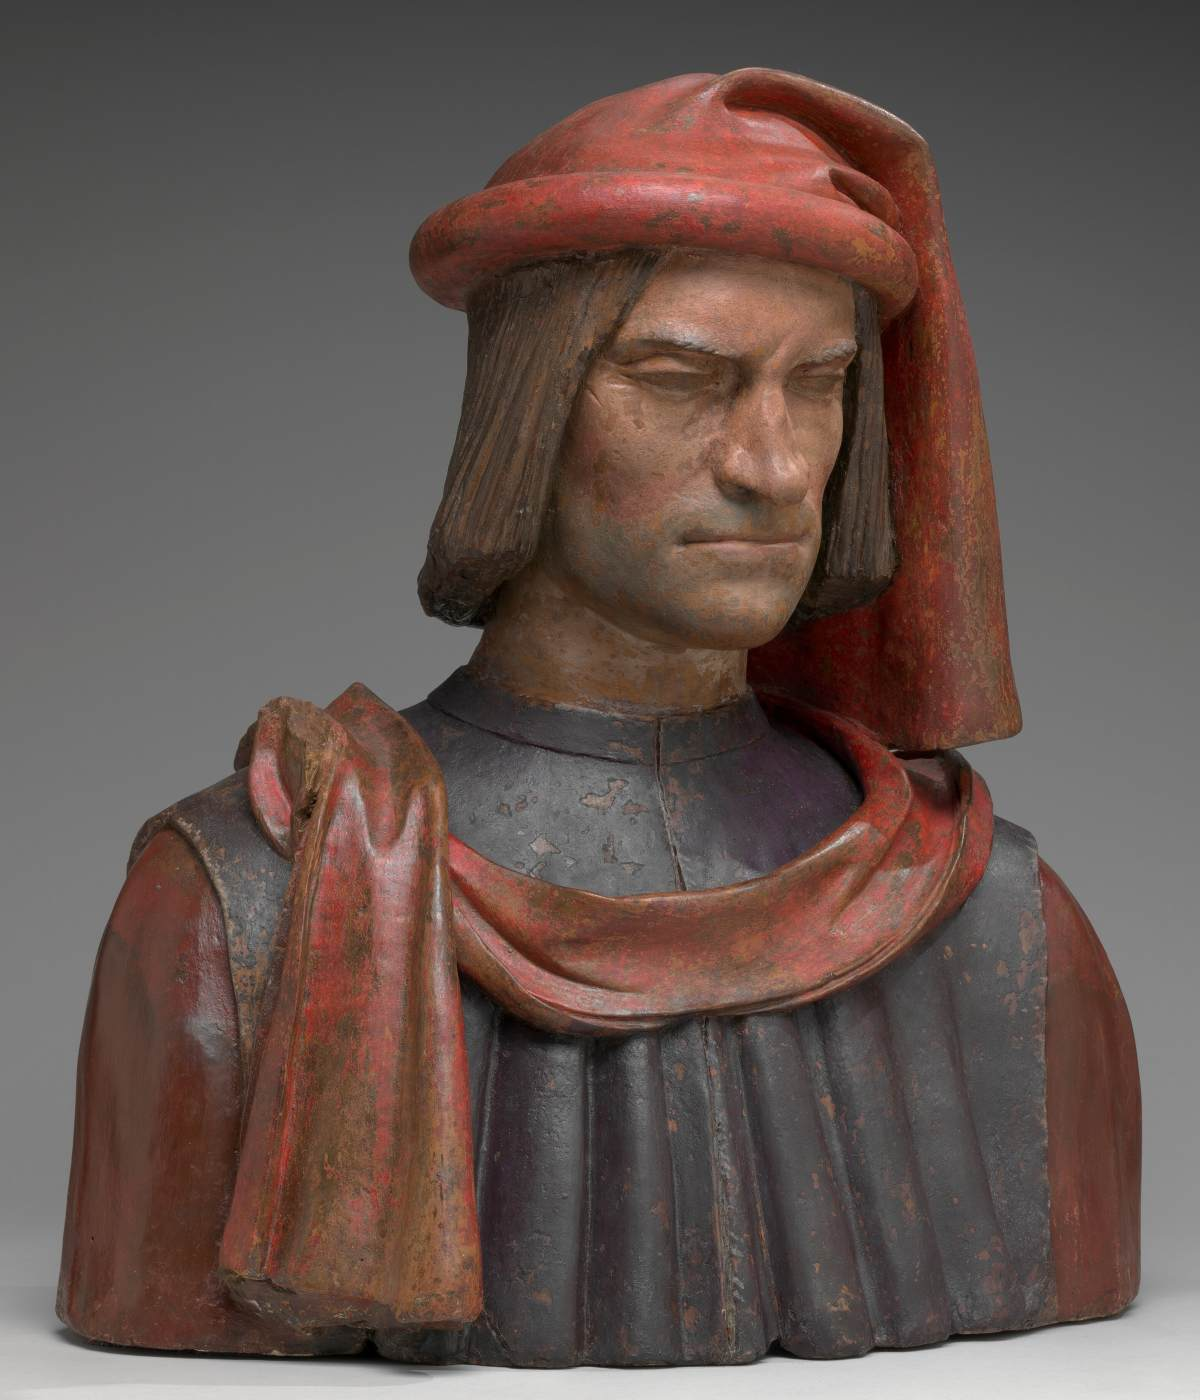 contempt, dislike, faces, portraits, sculptures, verrocchio